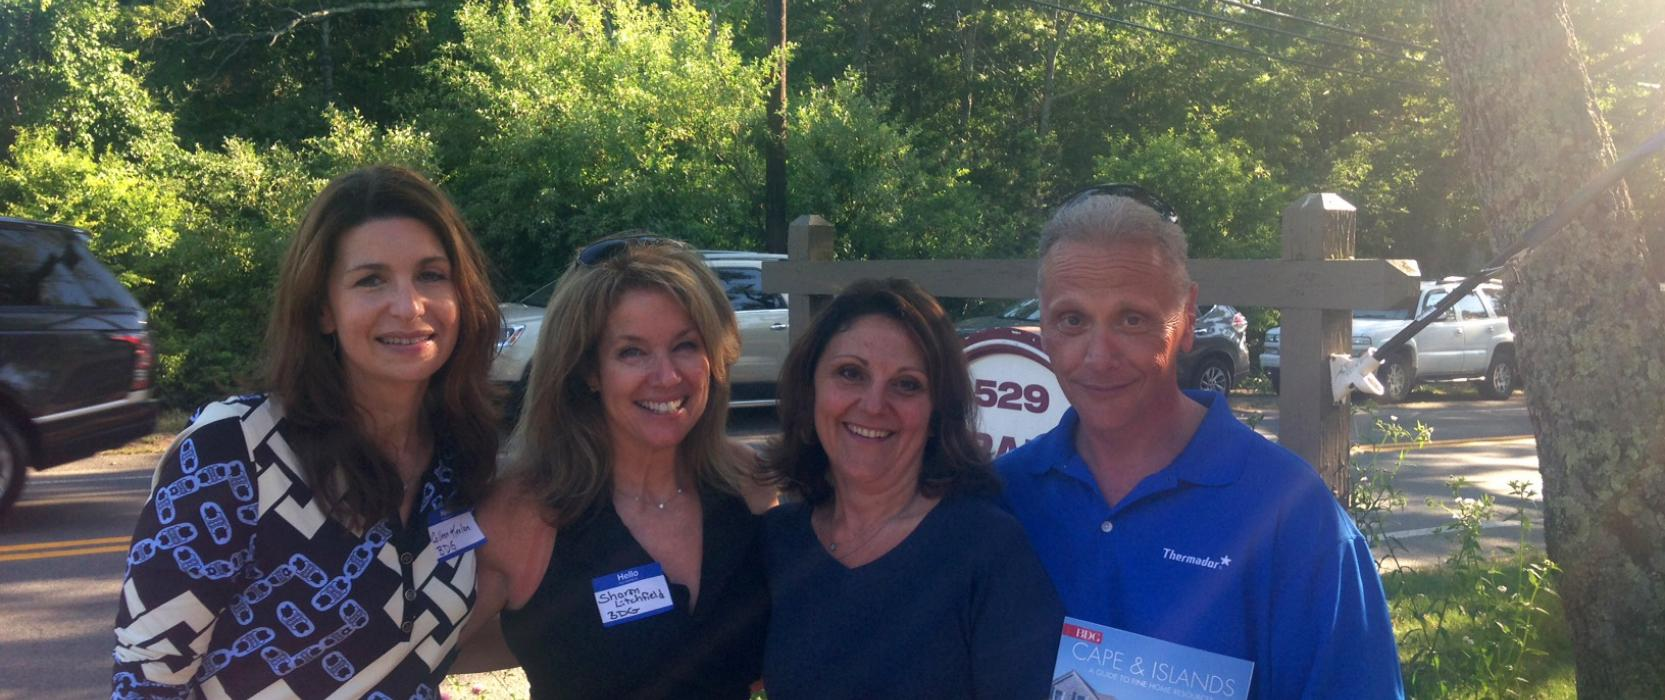 Boston Design Guide Advertising Managers Colleen Keelan and Sharon Litchfield with Crane Appliance representatives.